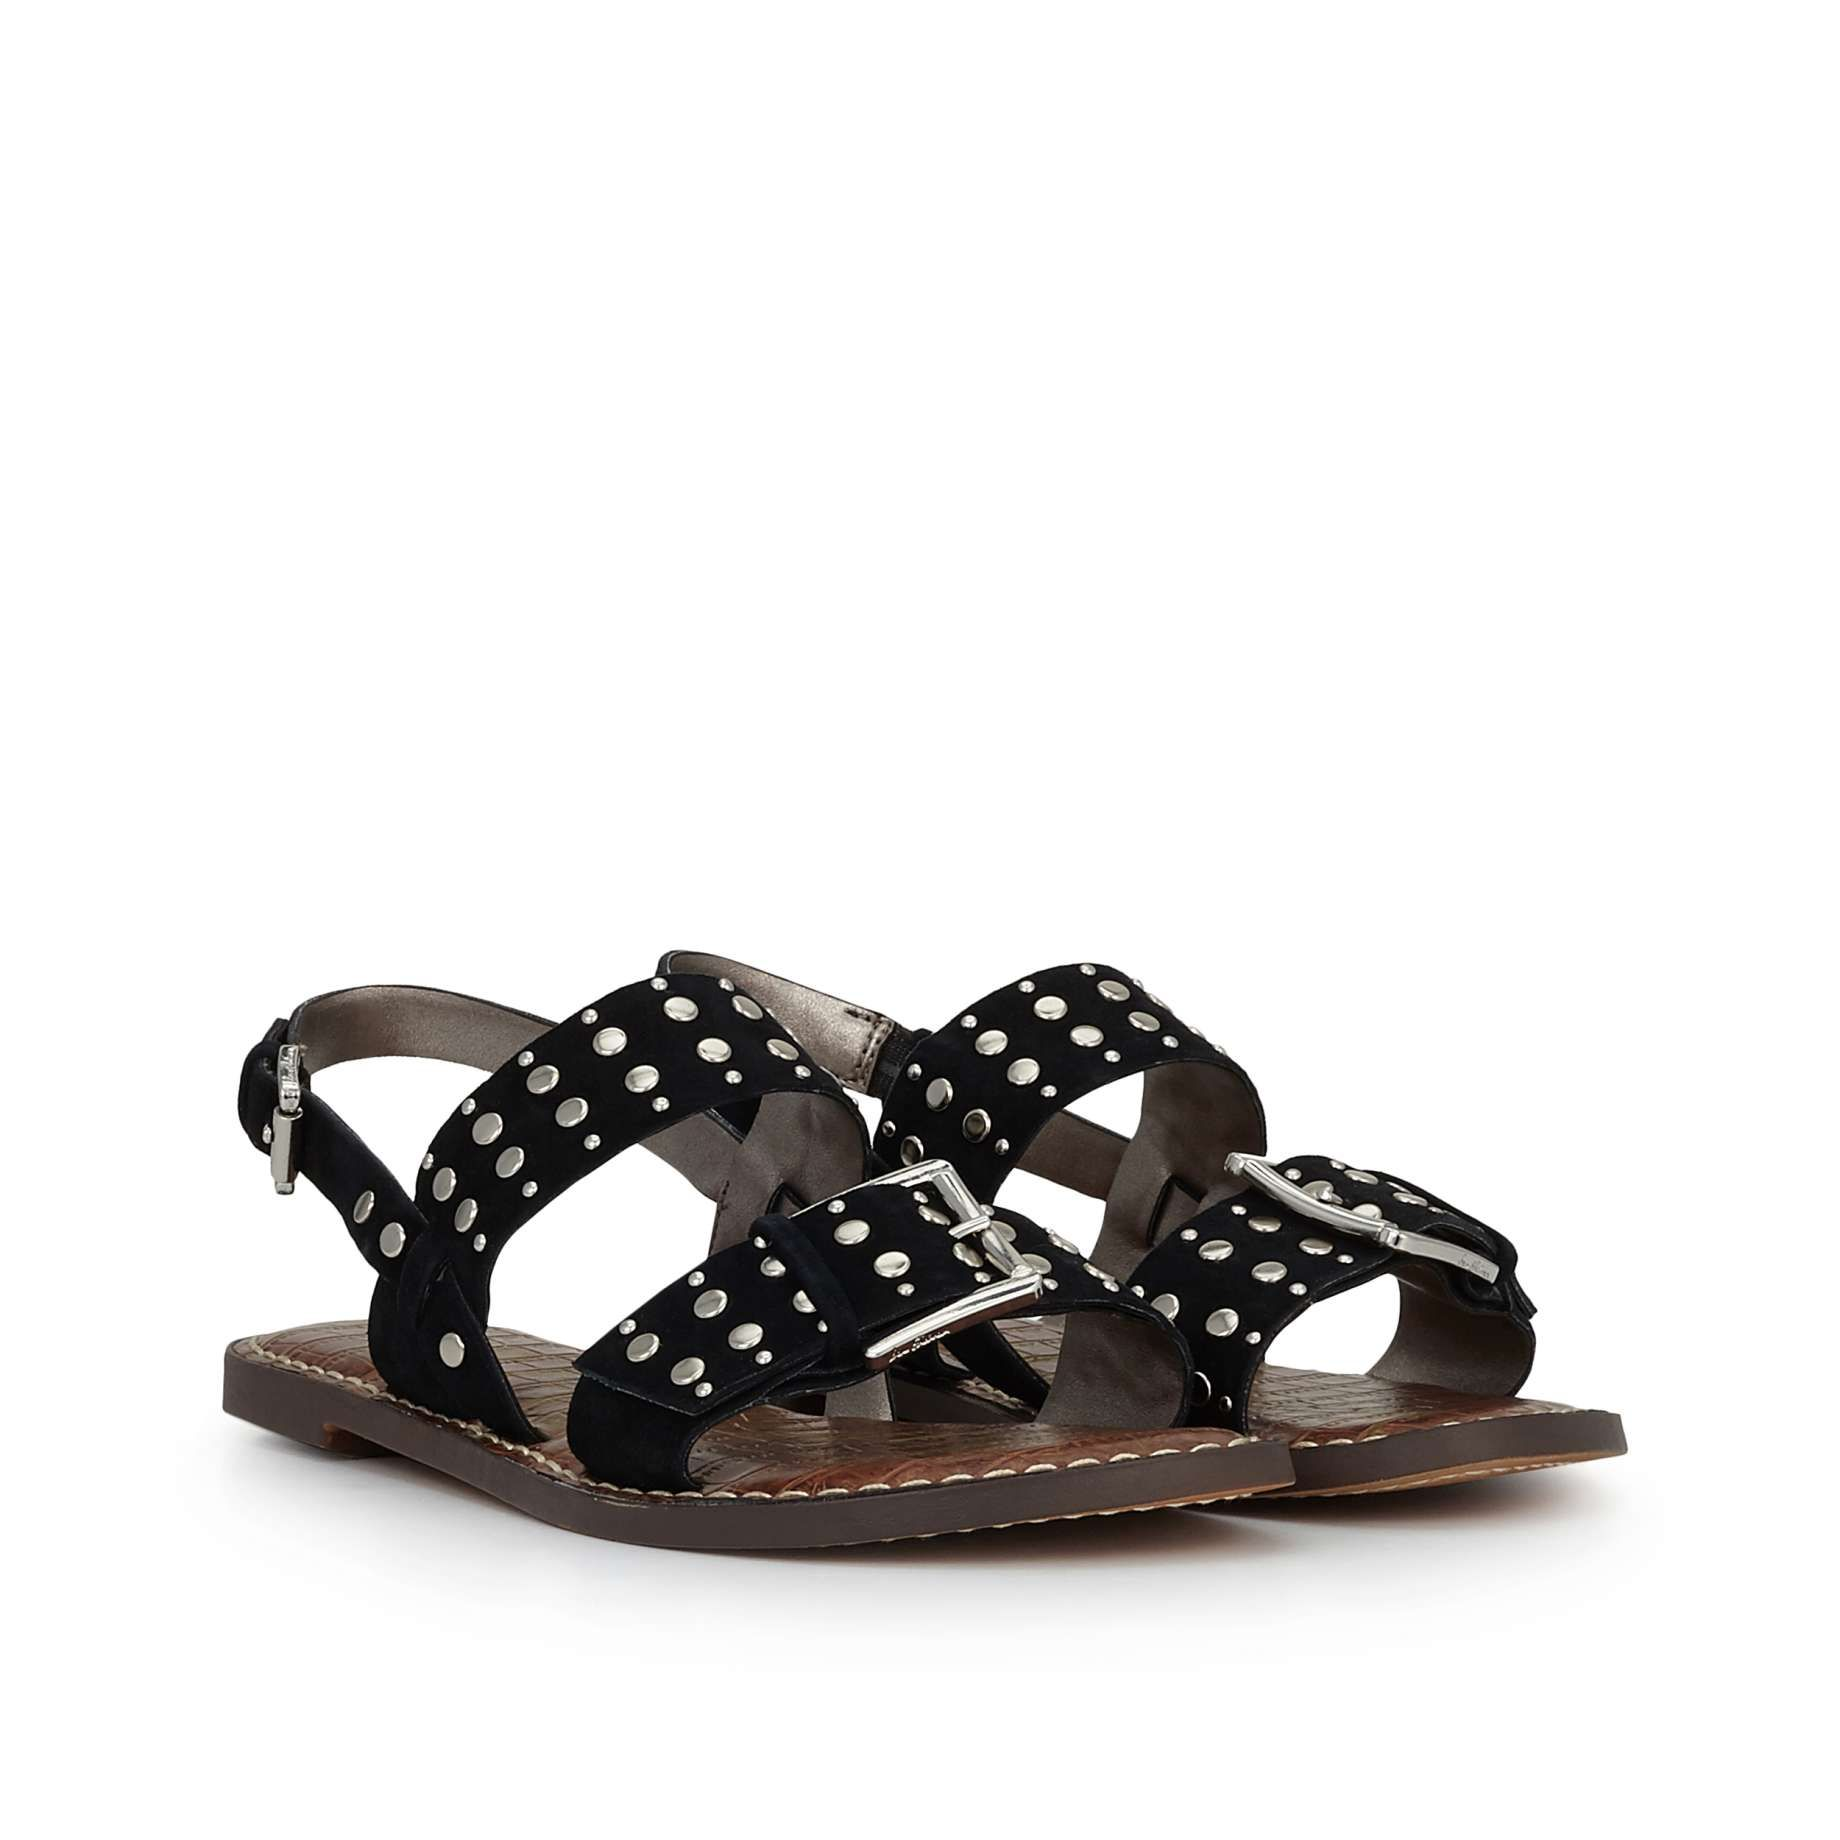 c52e93ff21d2 Glade Studded Sandal by Sam Edelman - - View 1